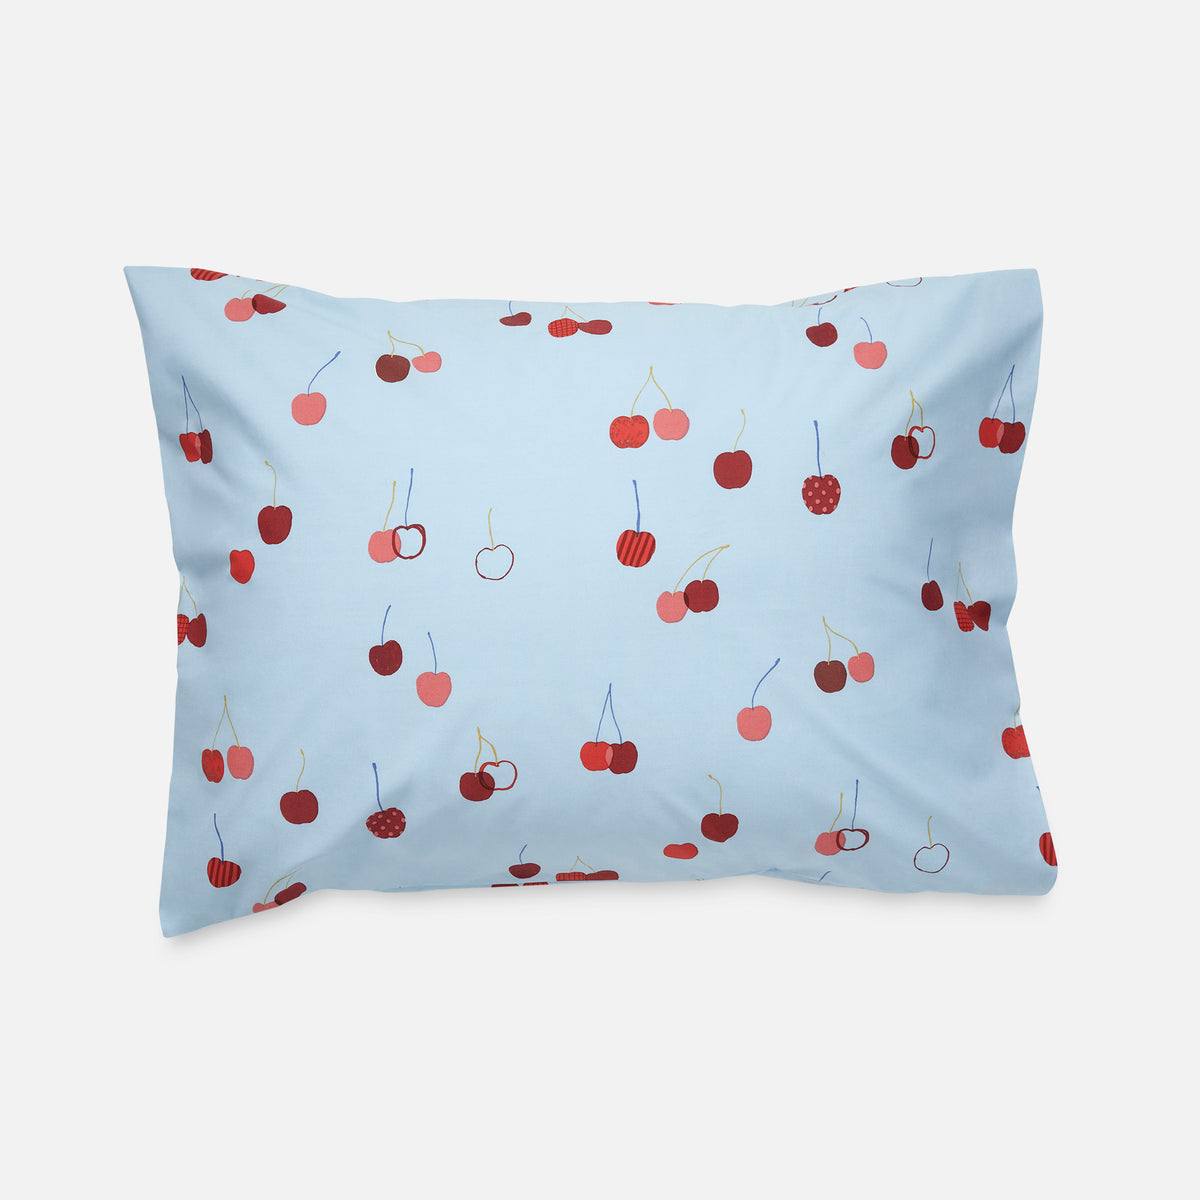 Scented Pillowcases / Cherries Jubilee